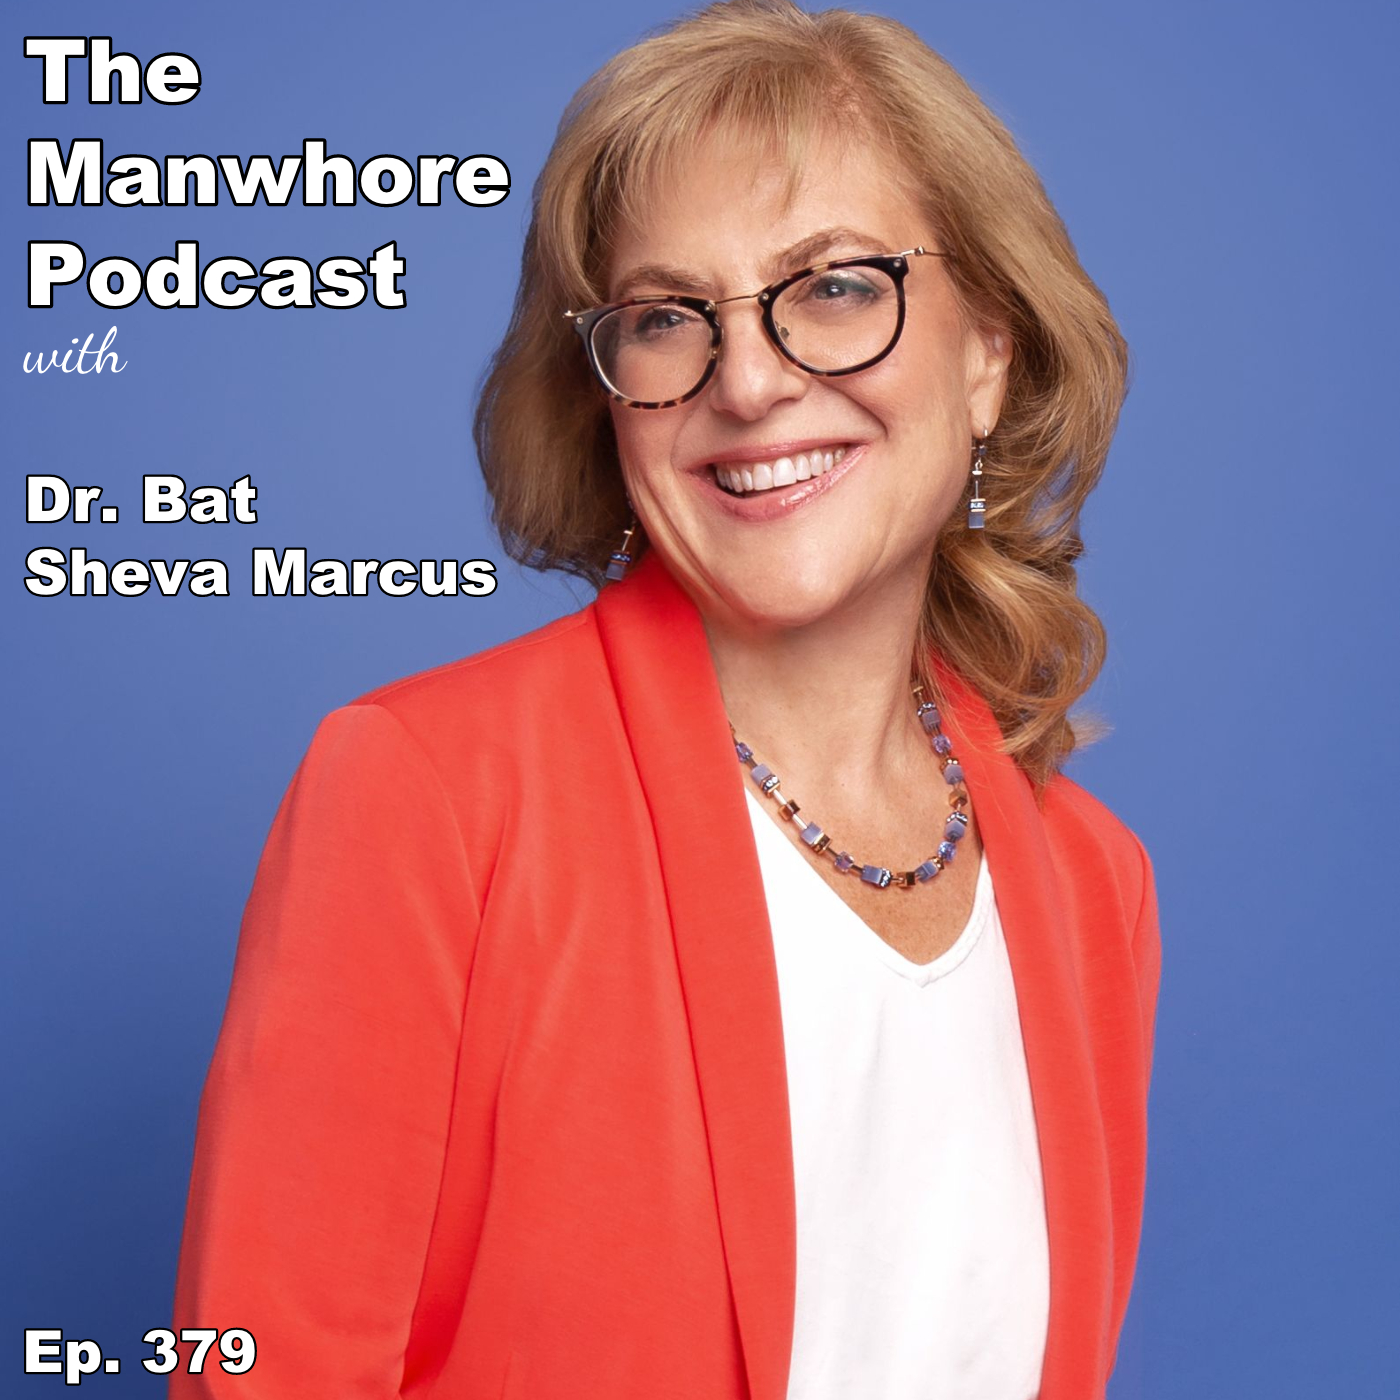 The Manwhore Podcast: A Sex-Positive Quest - Ep. 379: Sex, Religion, and The Kink Loophole with Dr. Bat Sheva Marcus